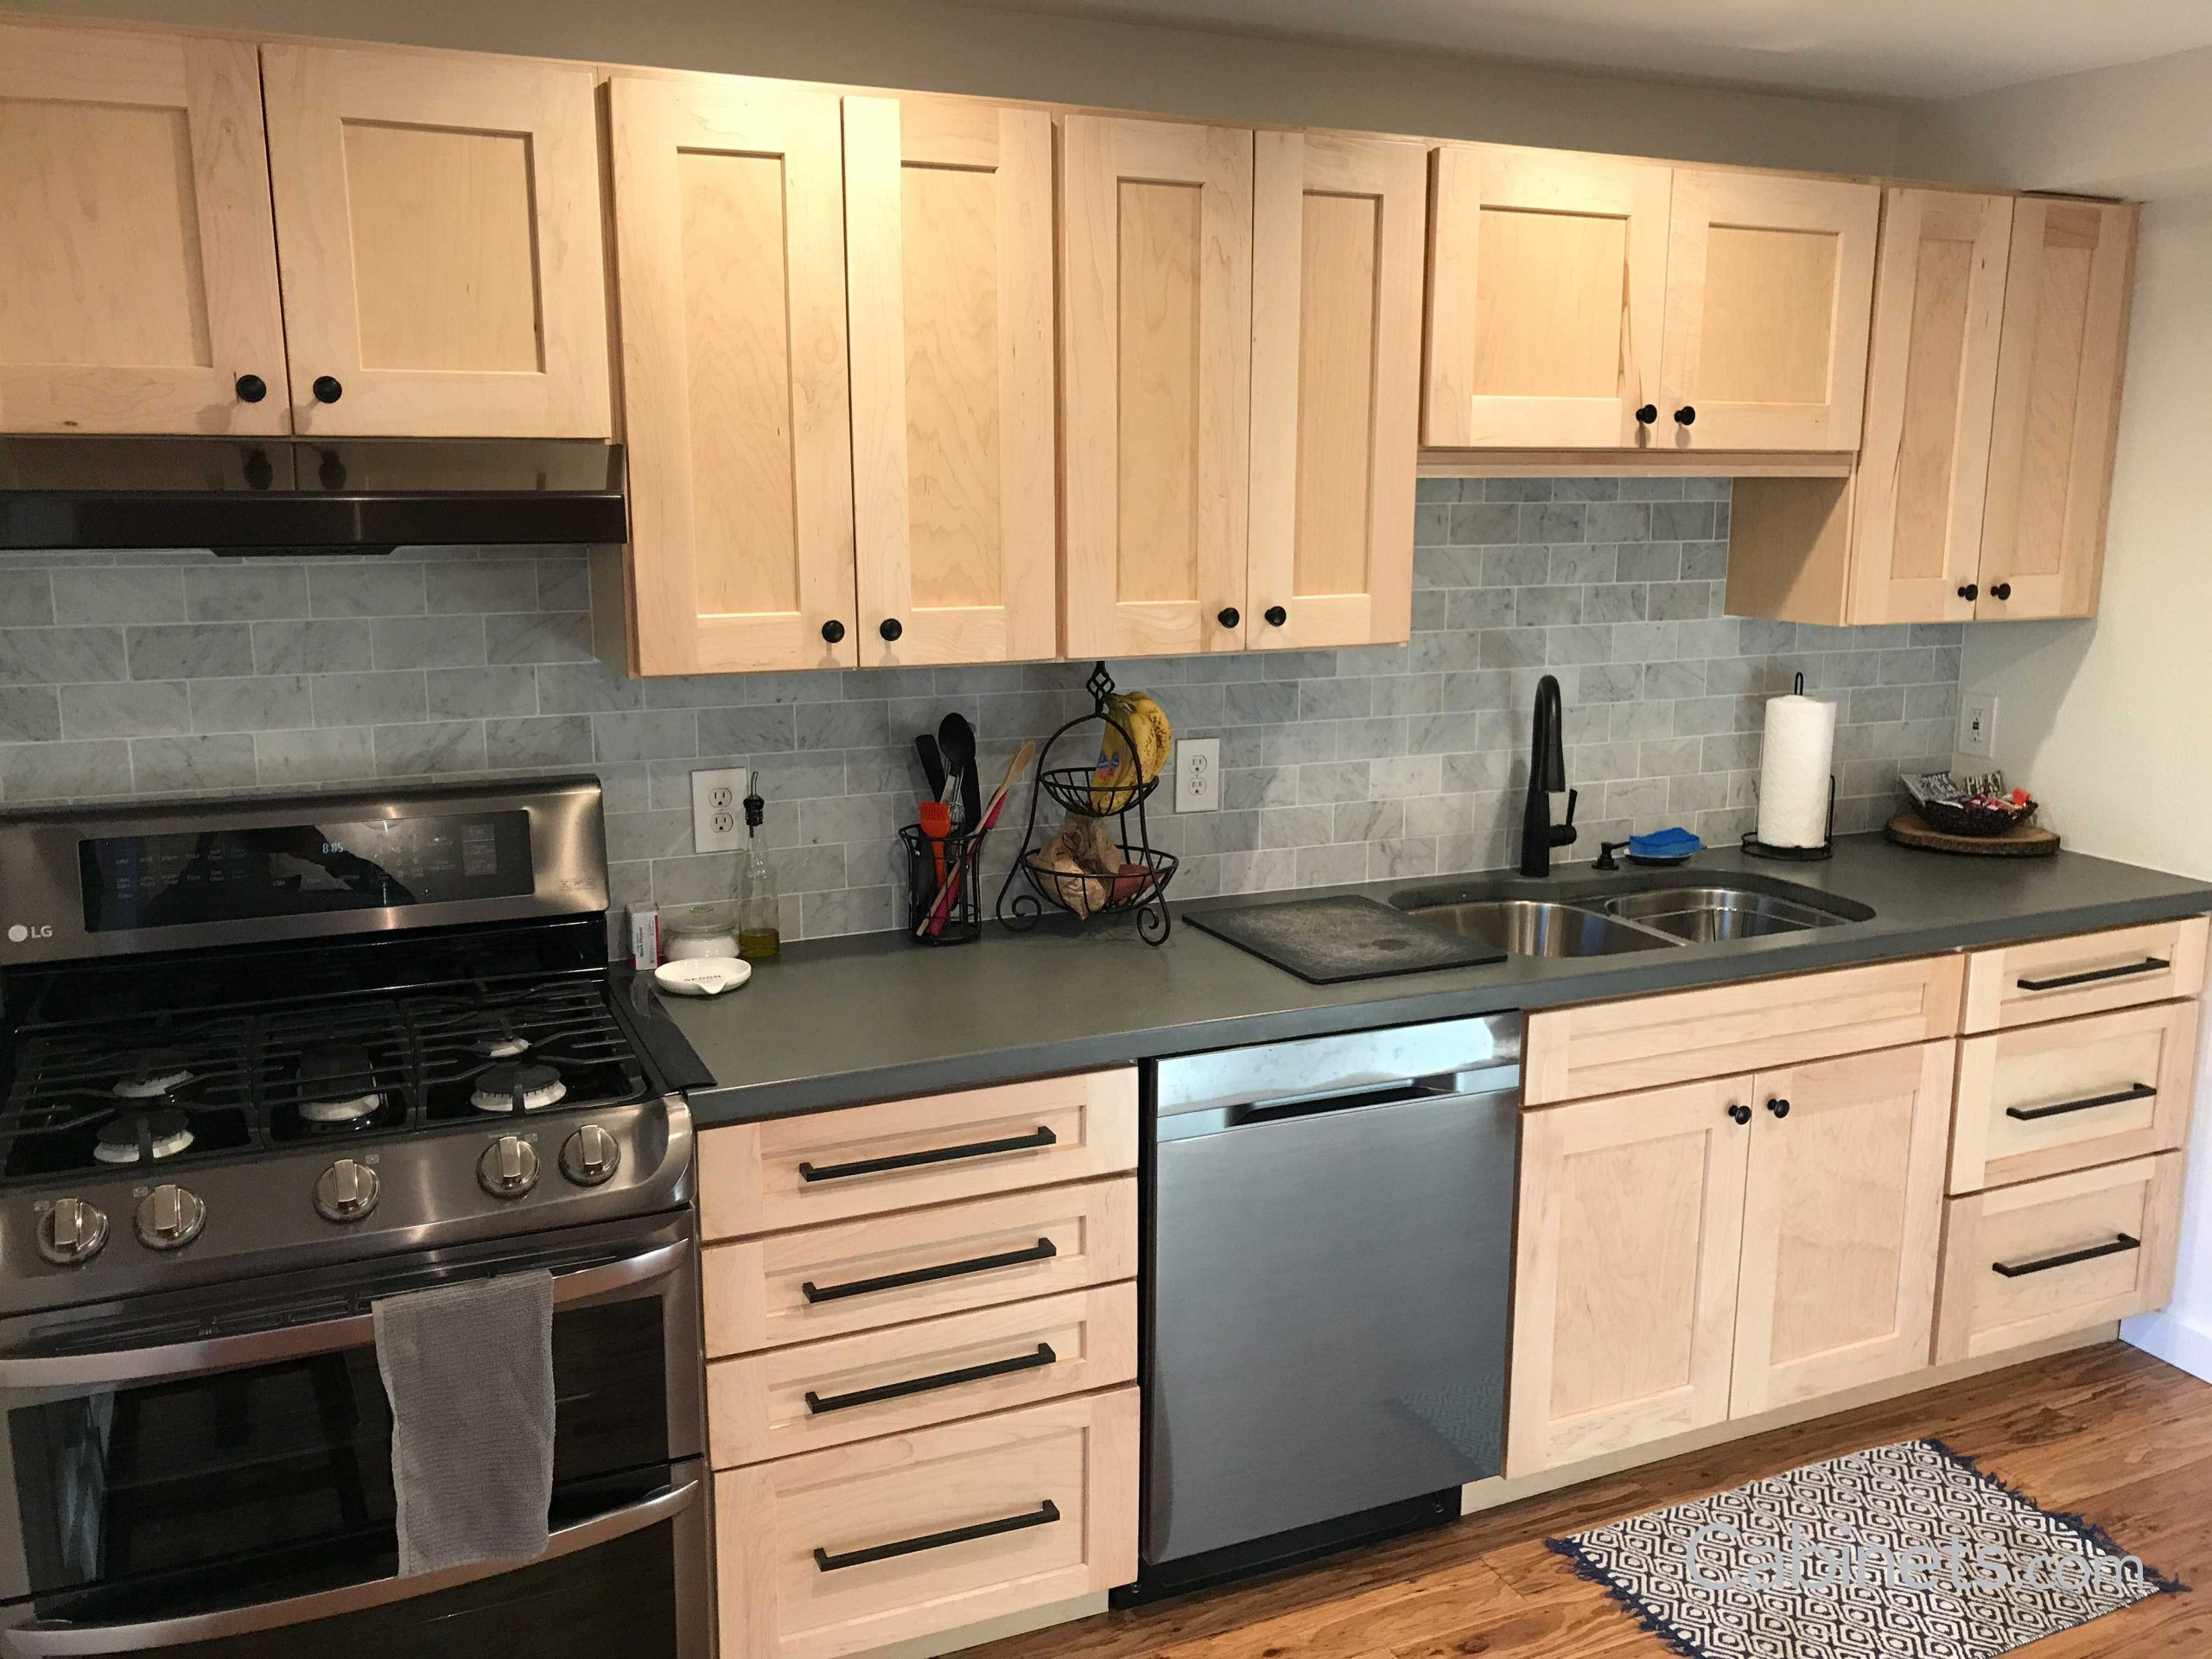 Shaker Ii Maple Natural Framed Cabinets Cabinets Com Io Net Home In 2021 Birch Kitchen Cabinets Maple Kitchen Cabinets Natural Wood Kitchen Cabinets